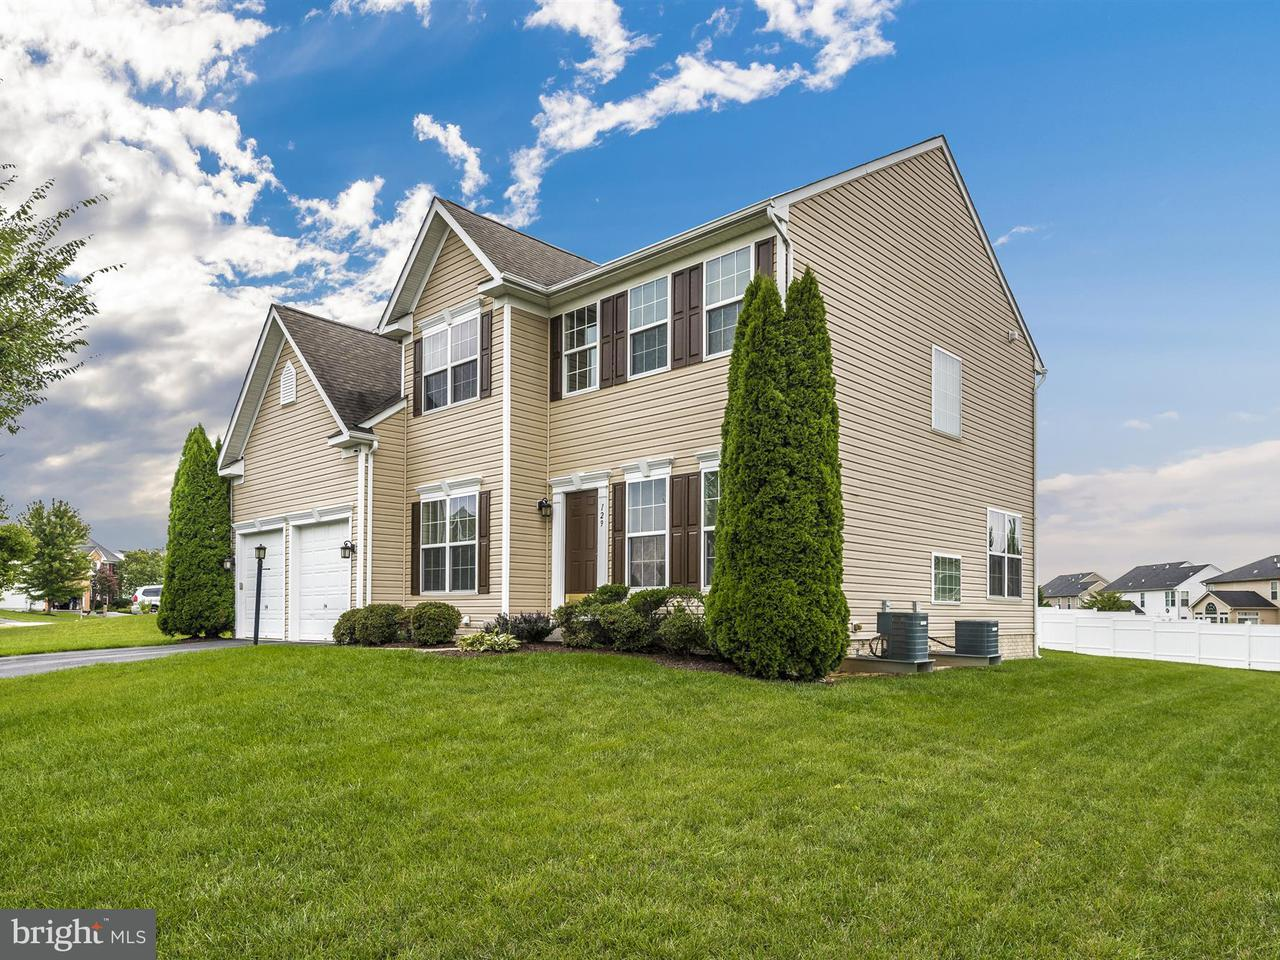 Single Family Home for Sale at 129 CAPRICORN Road 129 CAPRICORN Road Walkersville, Maryland 21793 United States